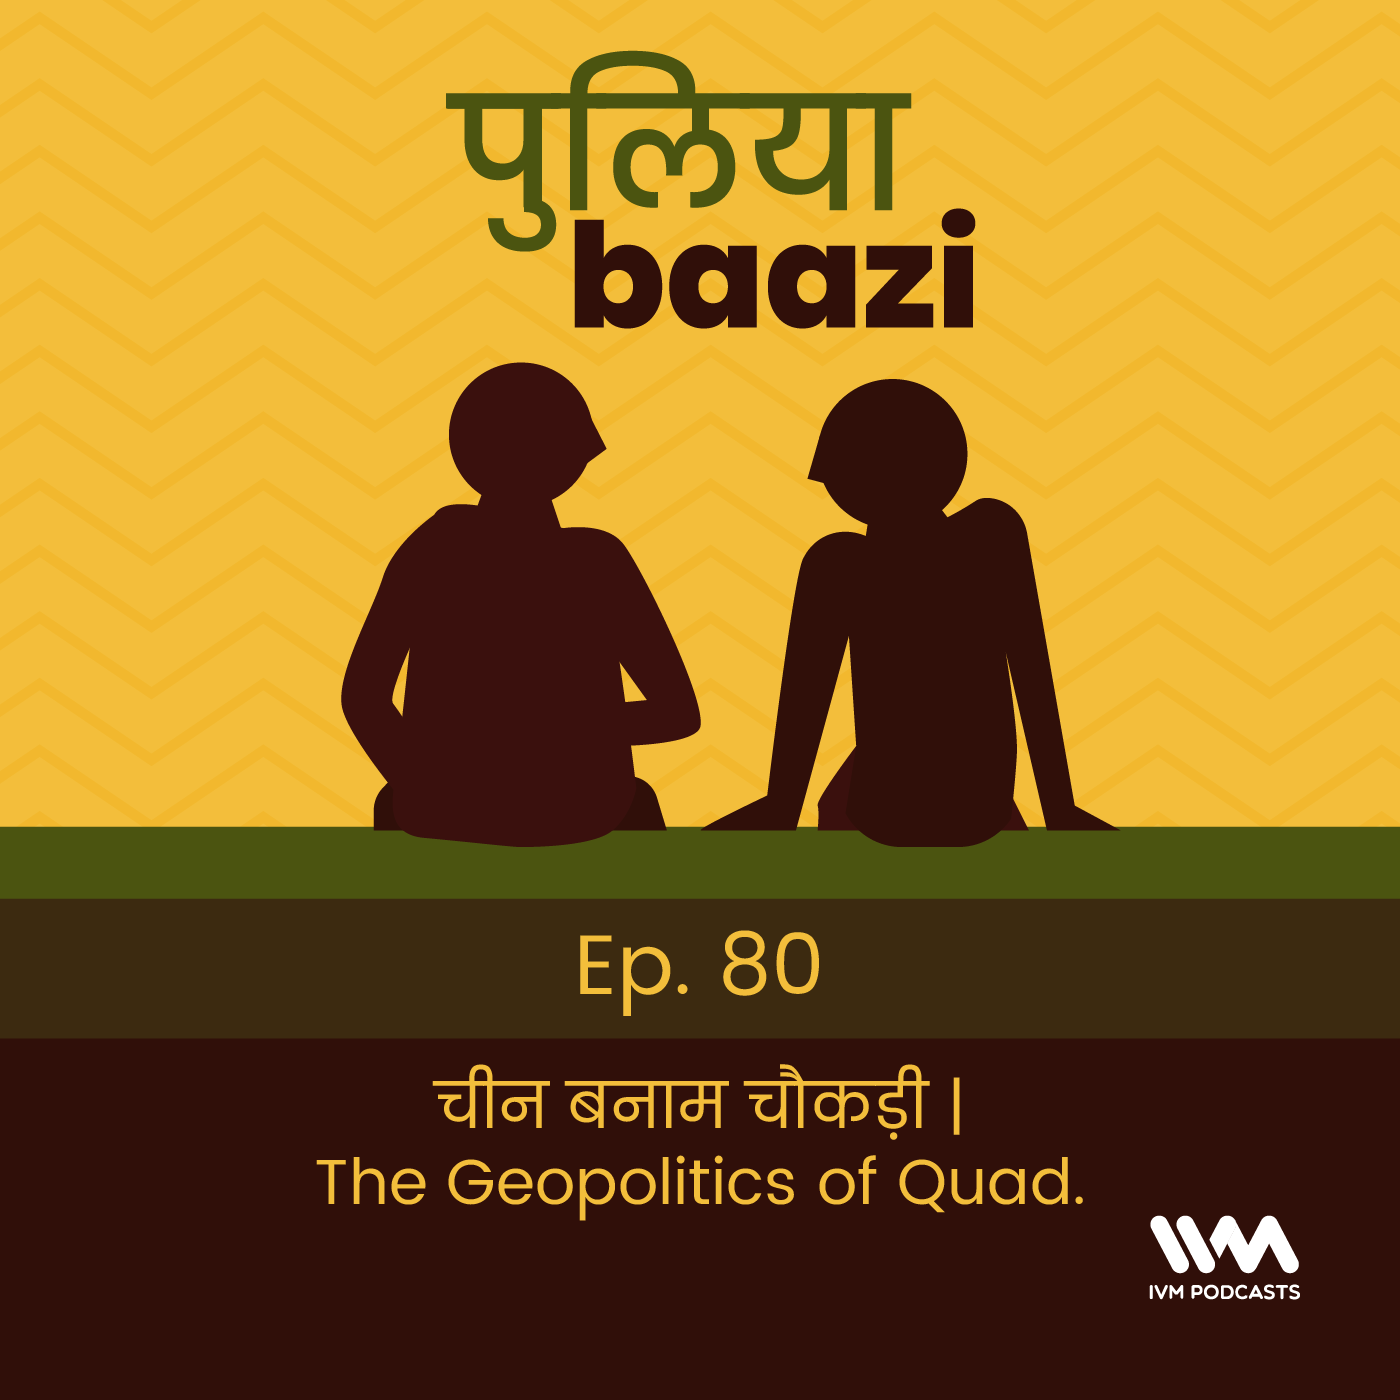 Ep. 80: चीन बनाम चौकड़ी | The Geopolitics of Quad.